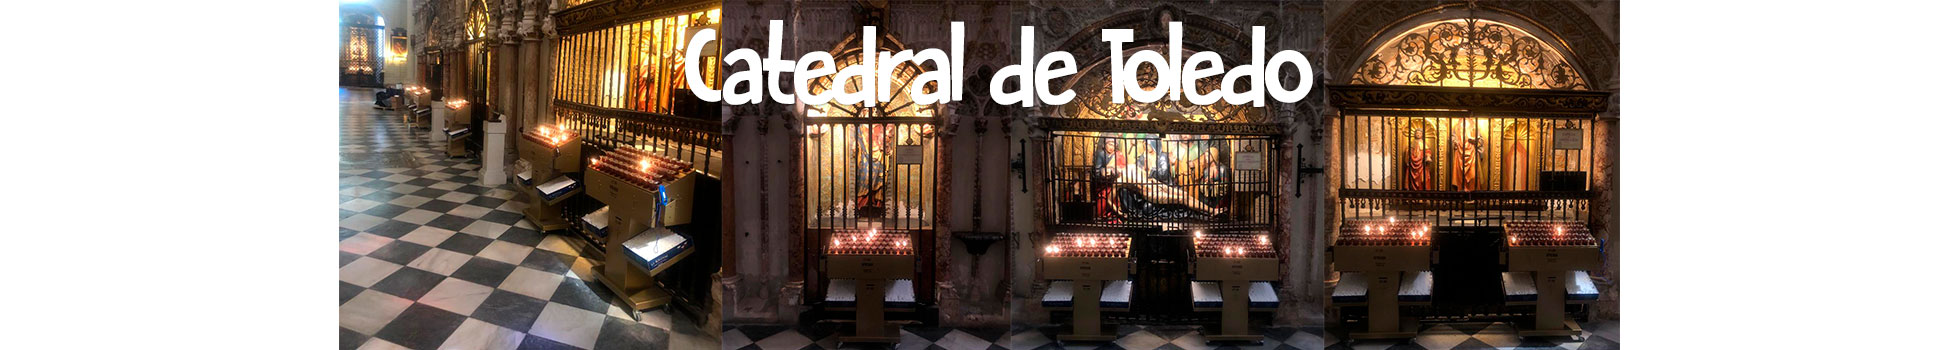 catedral-toled